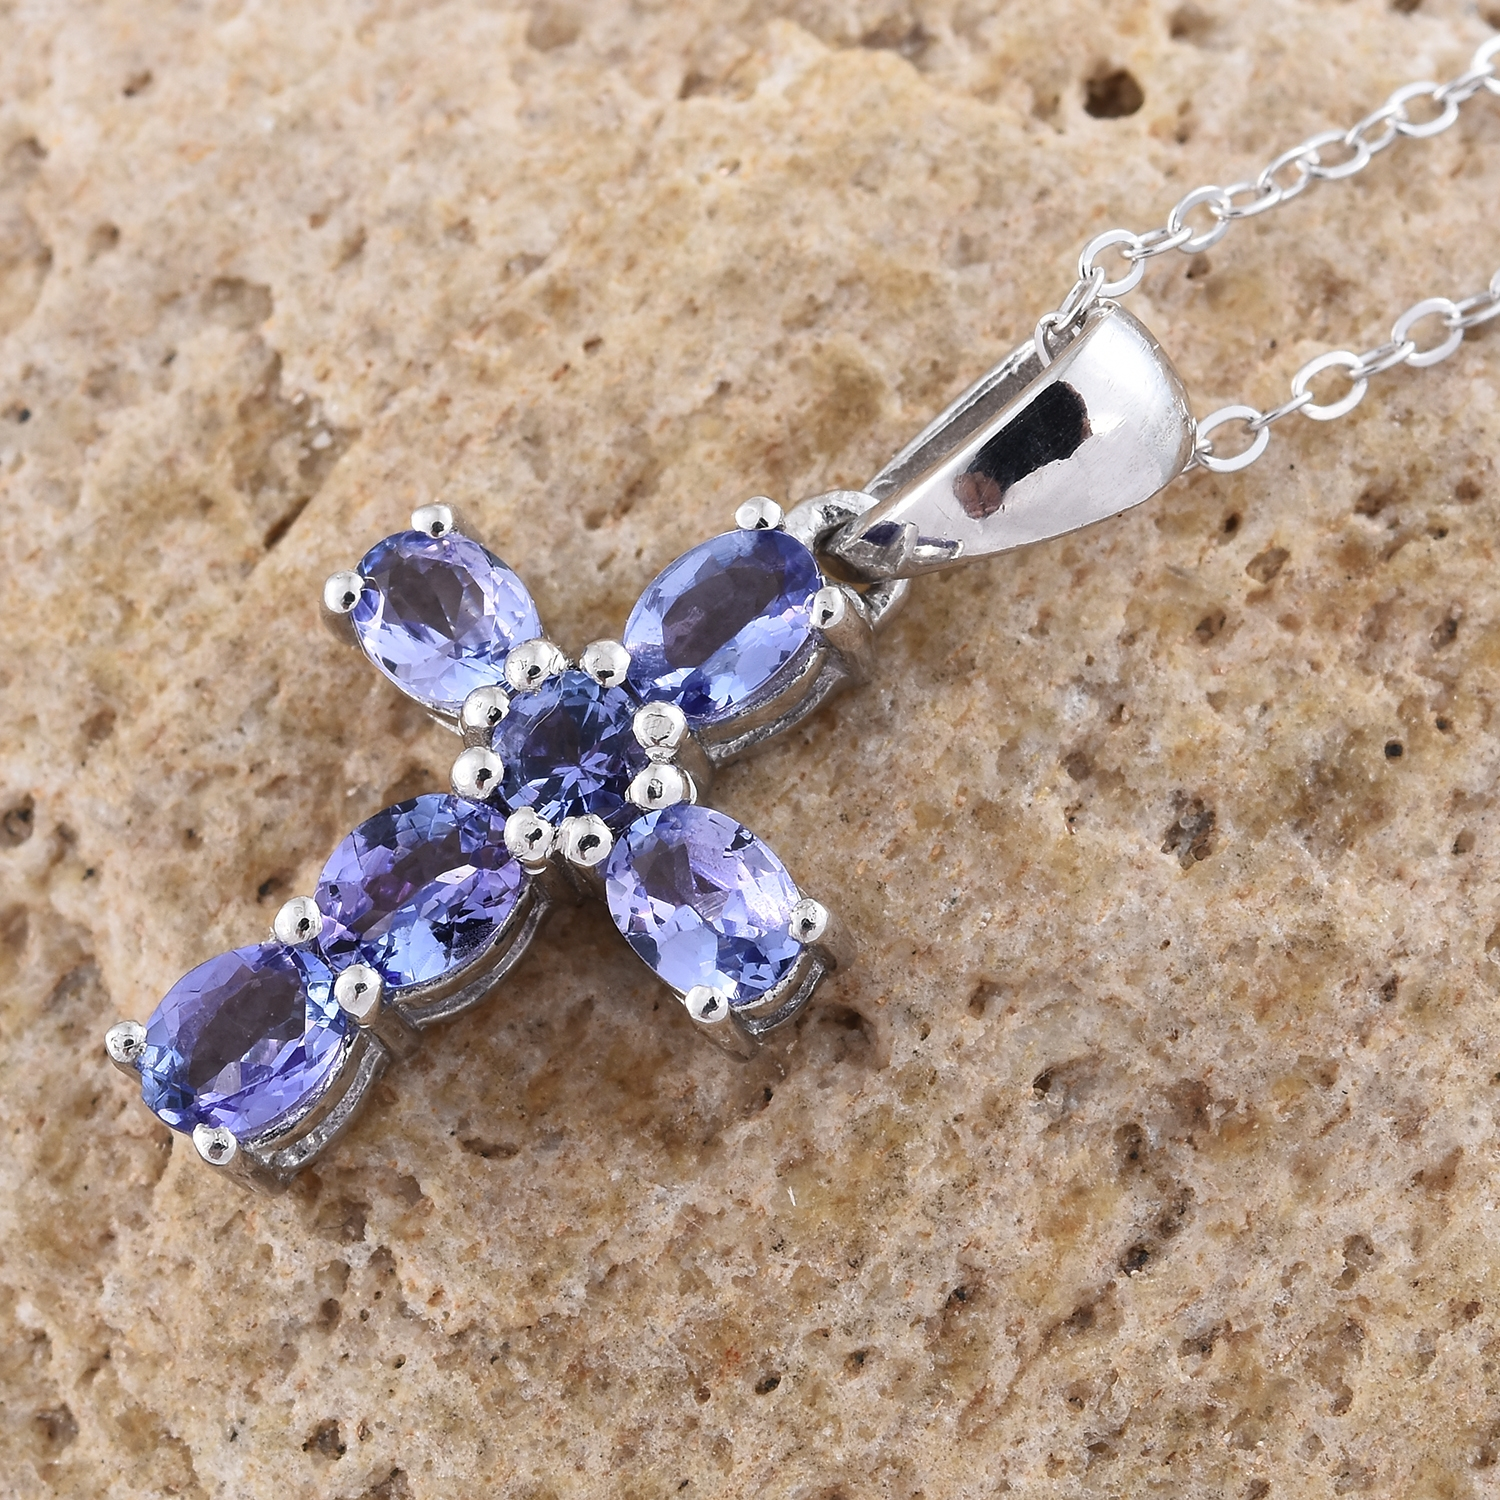 Premium aaa tanzanite platinum over sterling silver cross pendant premium aaa tanzanite platinum over sterling silver cross pendant with chain 20 in tgw 105 cts 2895726 aloadofball Choice Image